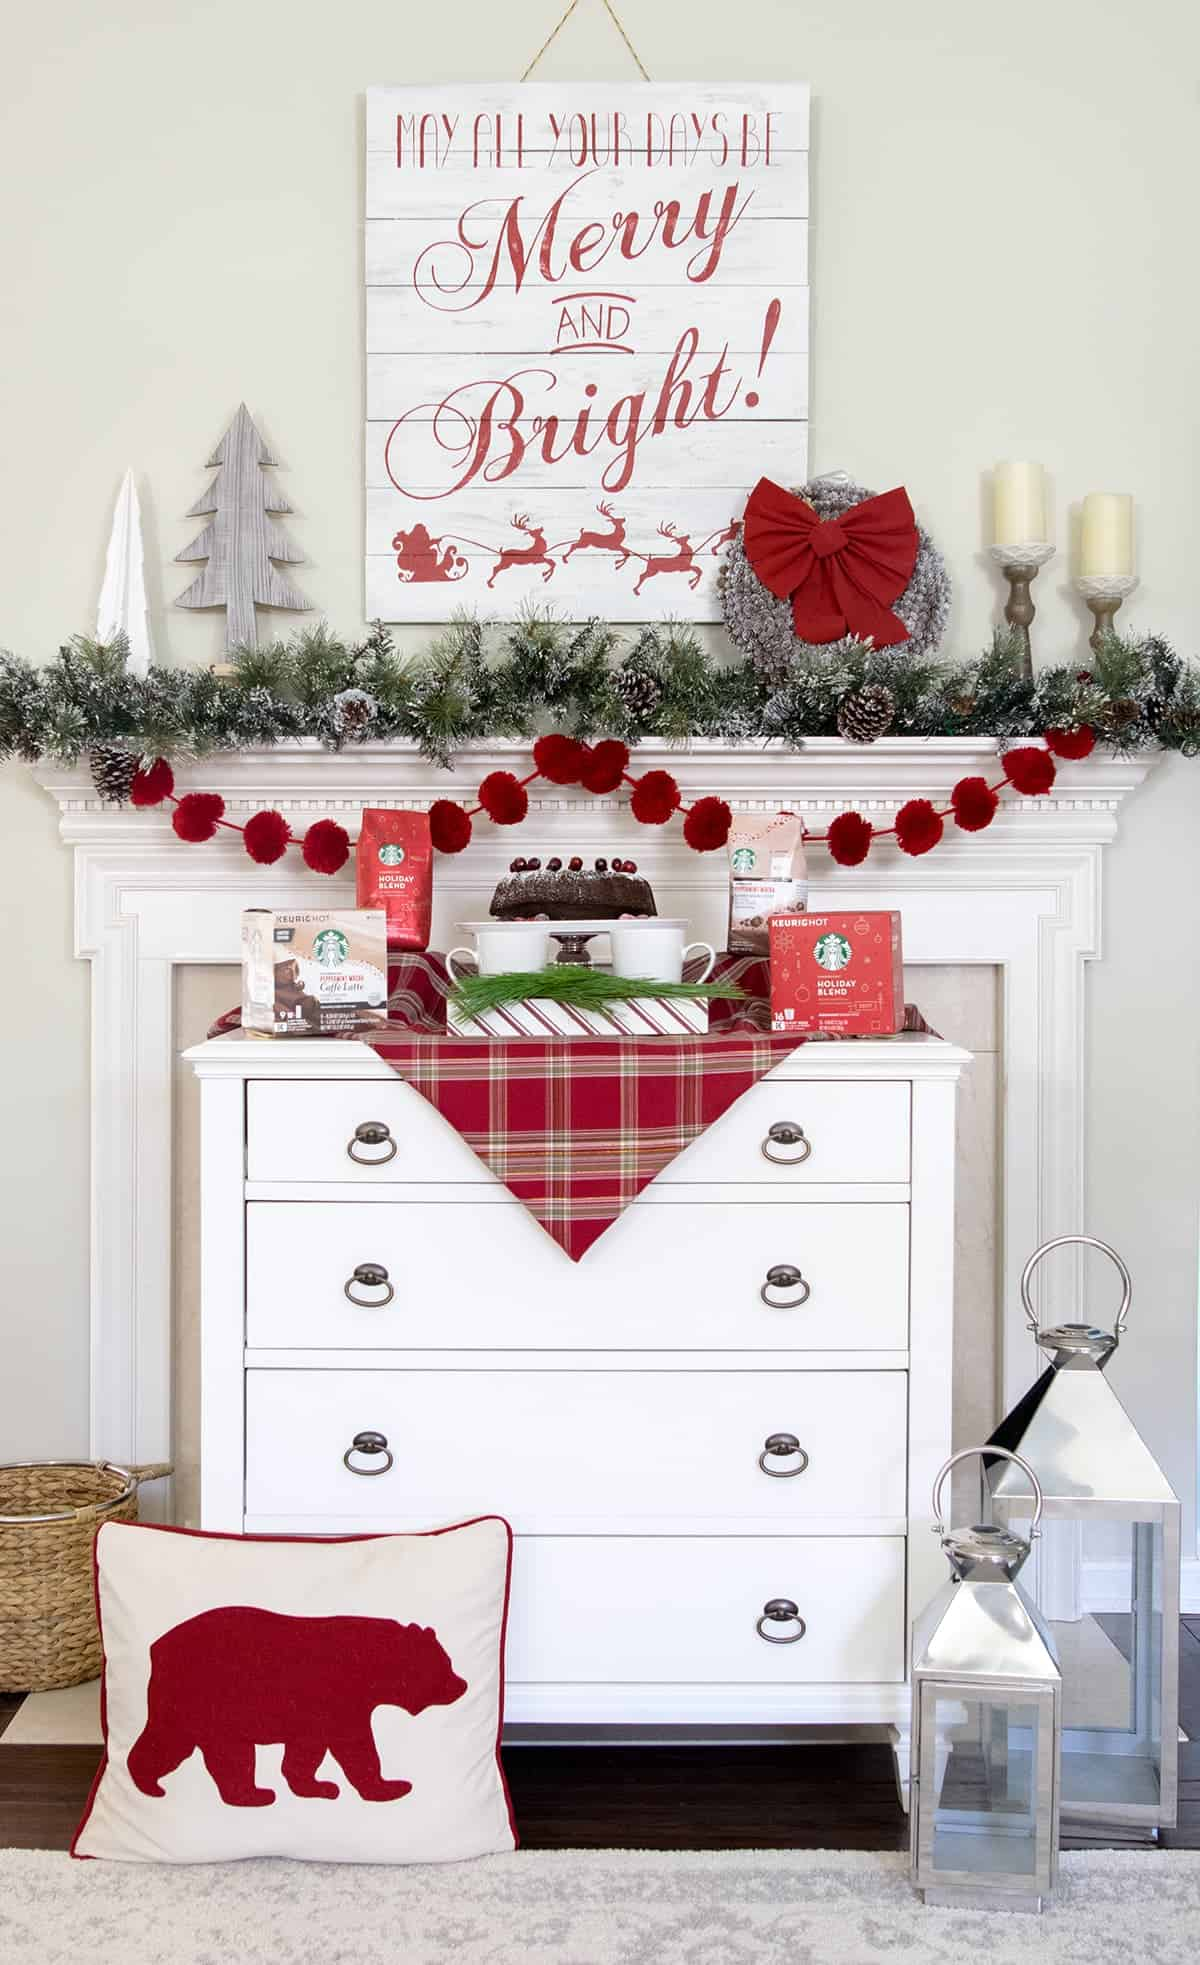 Mantle decorations and dessert bar for a holiday party. Red pom poms, snowy garland, Christmas tree shapes, Merry & Bright sign and candlesticks compliment colors on the makeshift buffet.